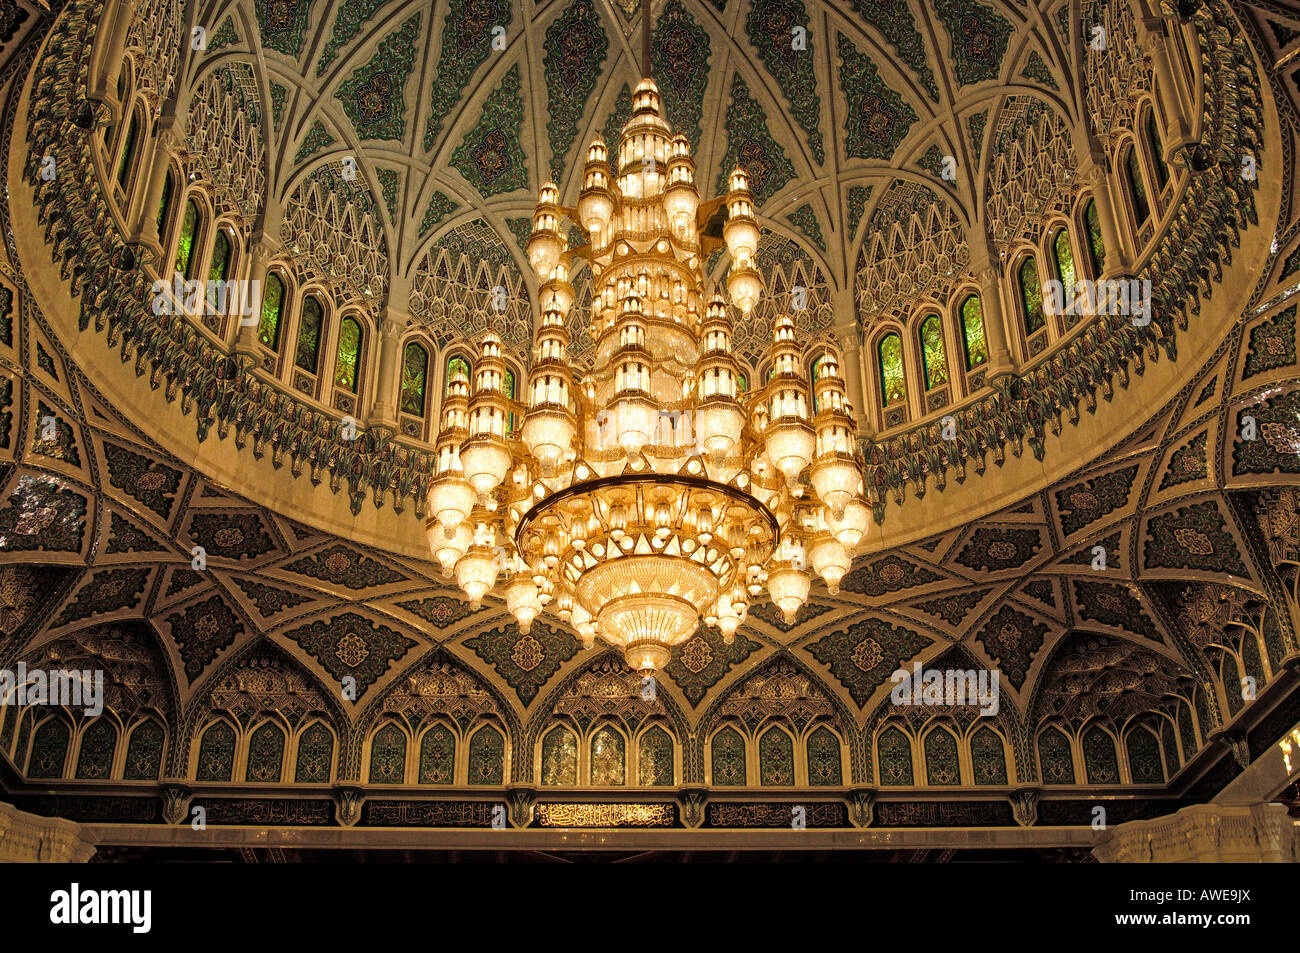 Chandelier Made In Germany Sultan Qaboos Mosque Mu Sultanate Of Oman Largest The World Weight 8 5 Tons